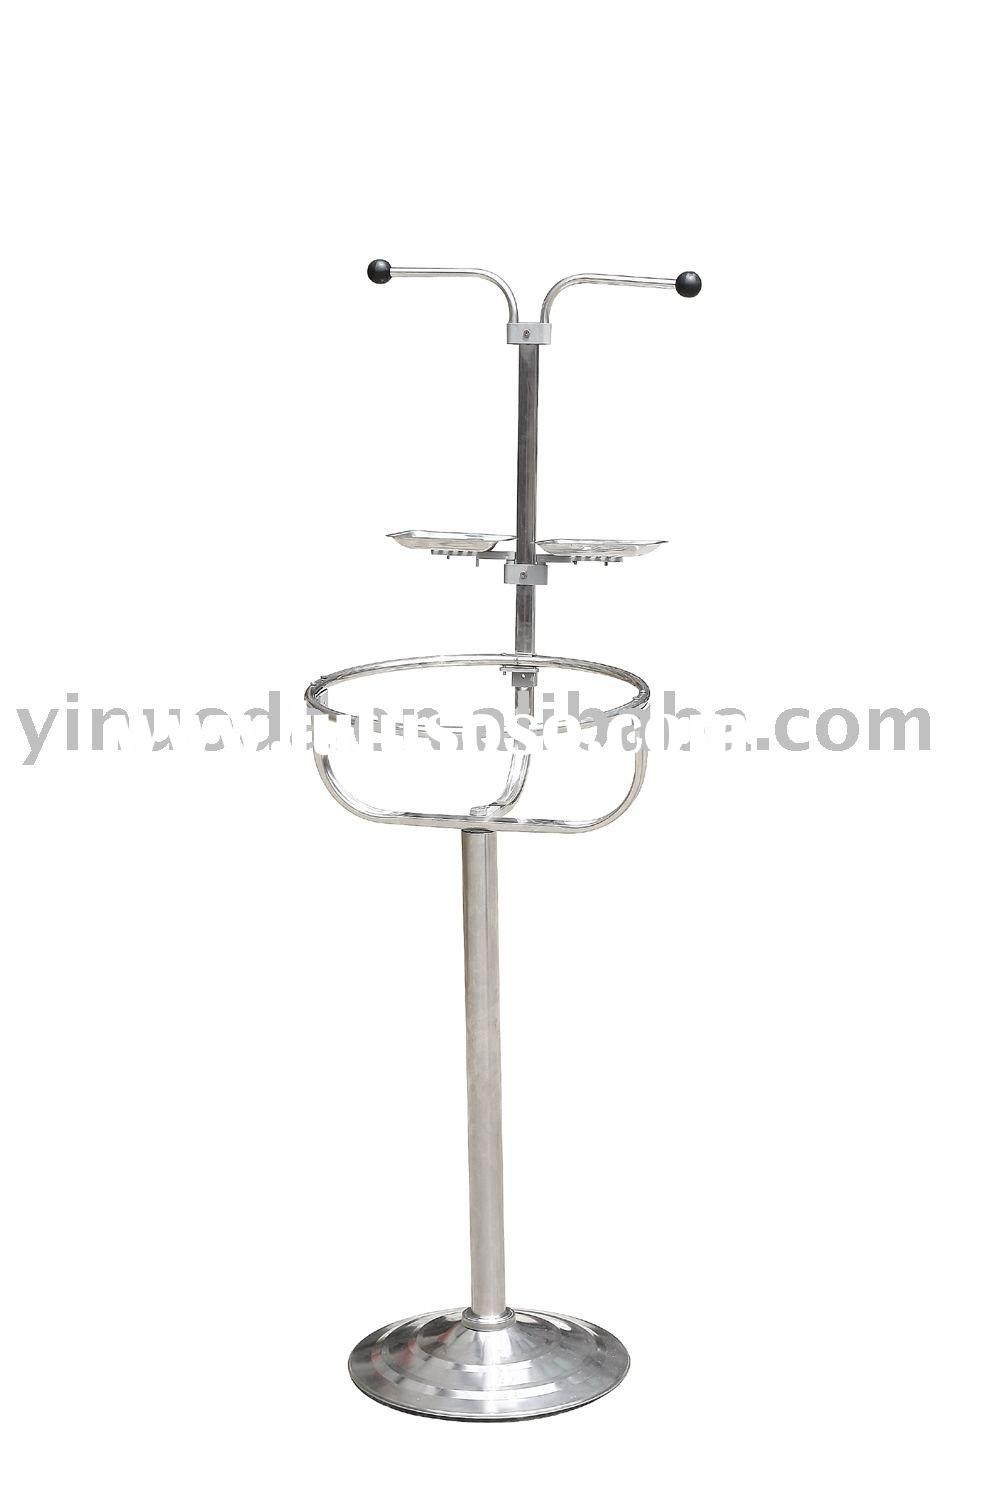 washstand,basin stand,wash furniture